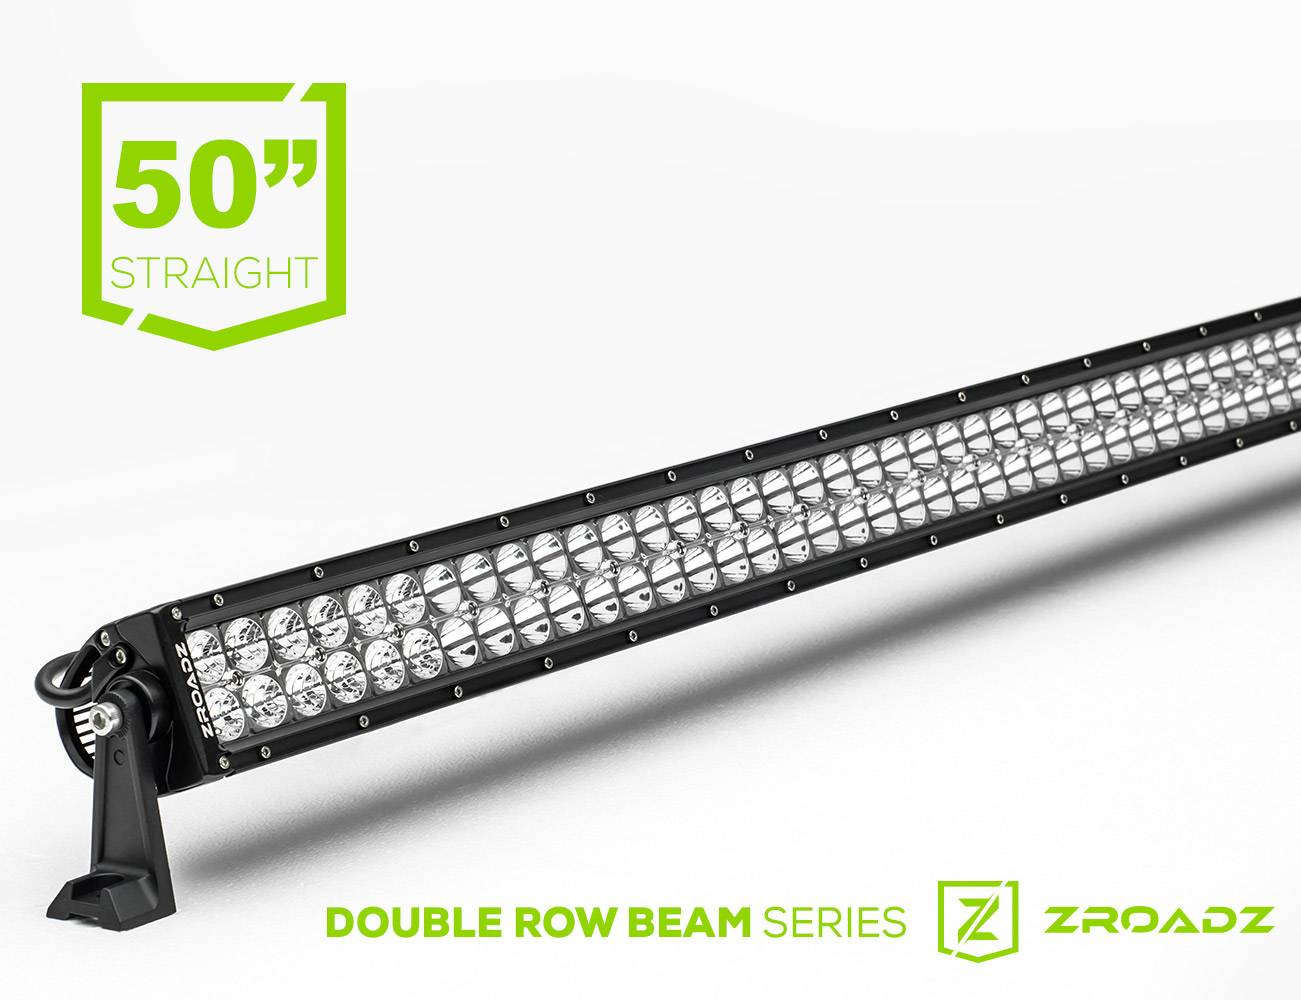 ZROADZ - (1) 50 Inch LED Curved Double Row Light Bar - PN #Z30CBC14W288